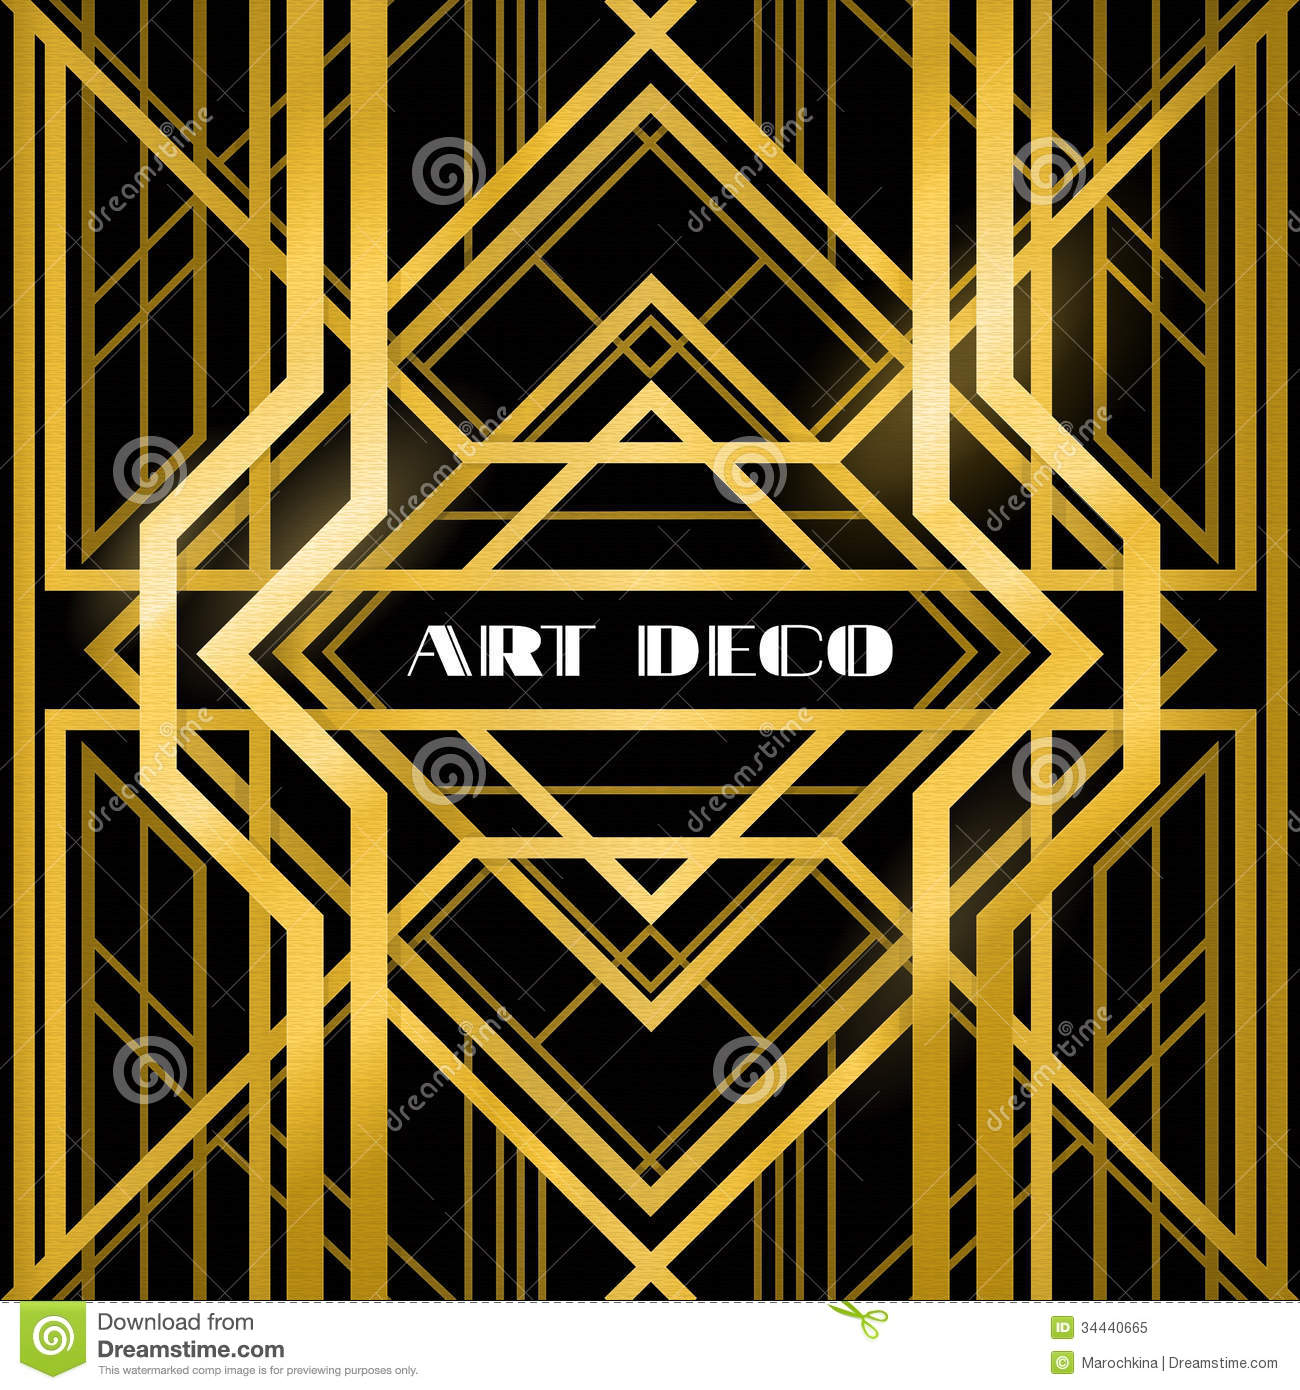 Photo Art Deco Art Deco Grille Stock Vector Image Of Border Frame